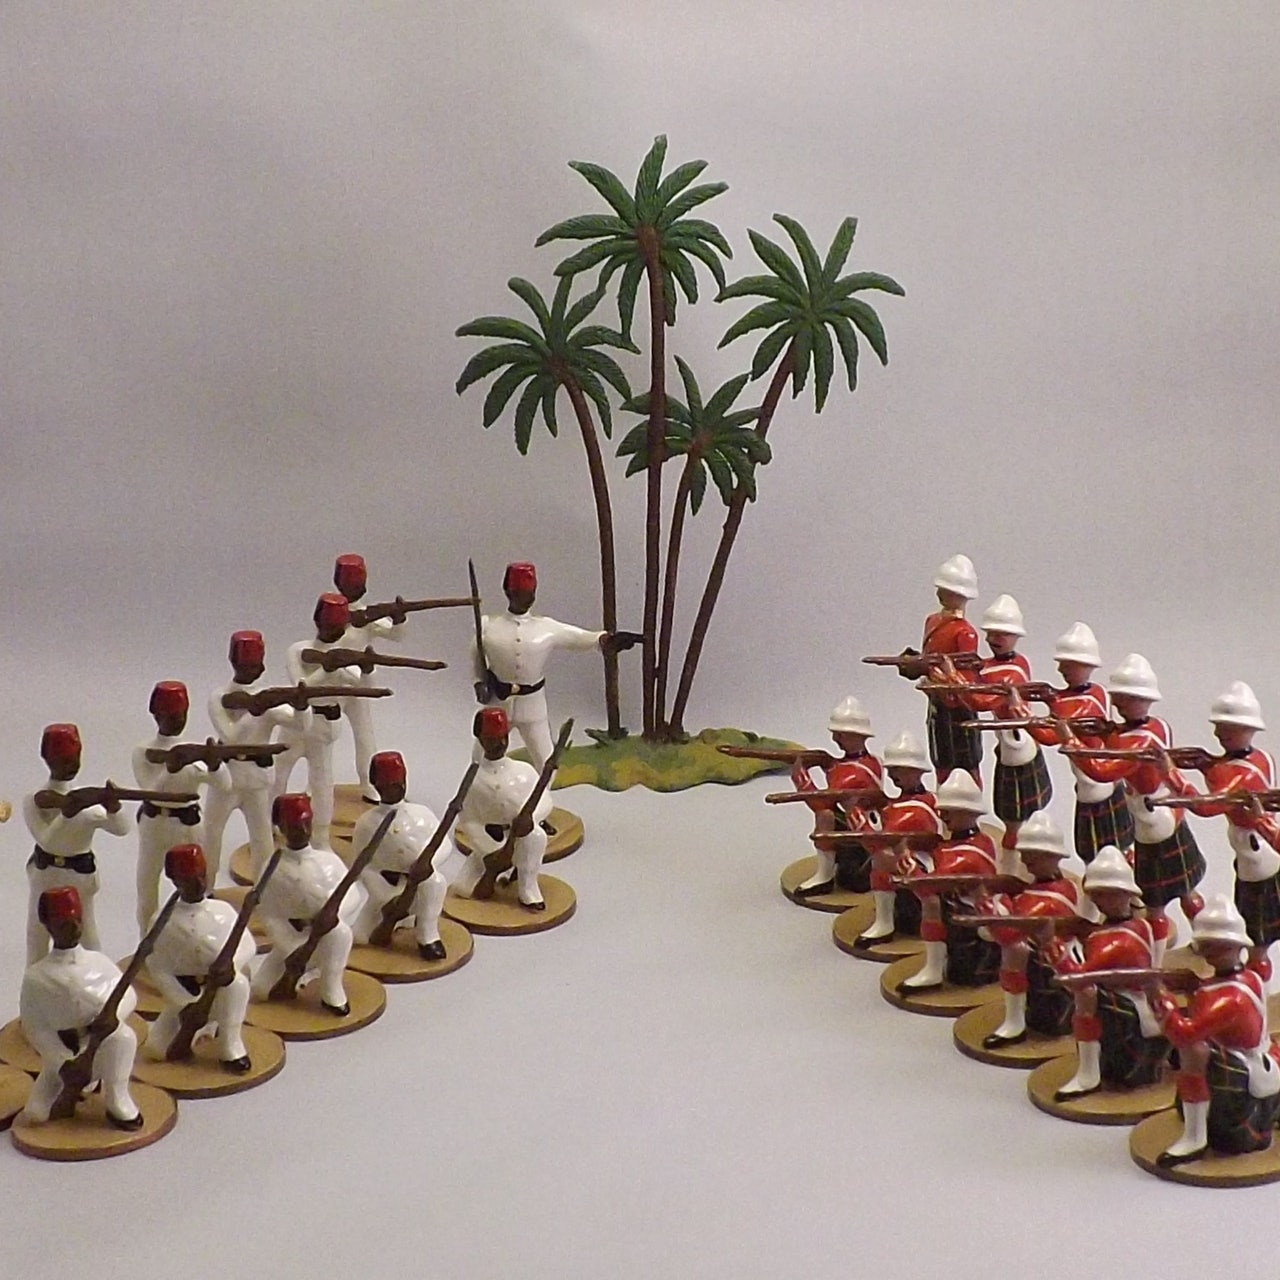 A Gentleman's War - Complete Unit  Troop Packs of Foot and Mounted Castings